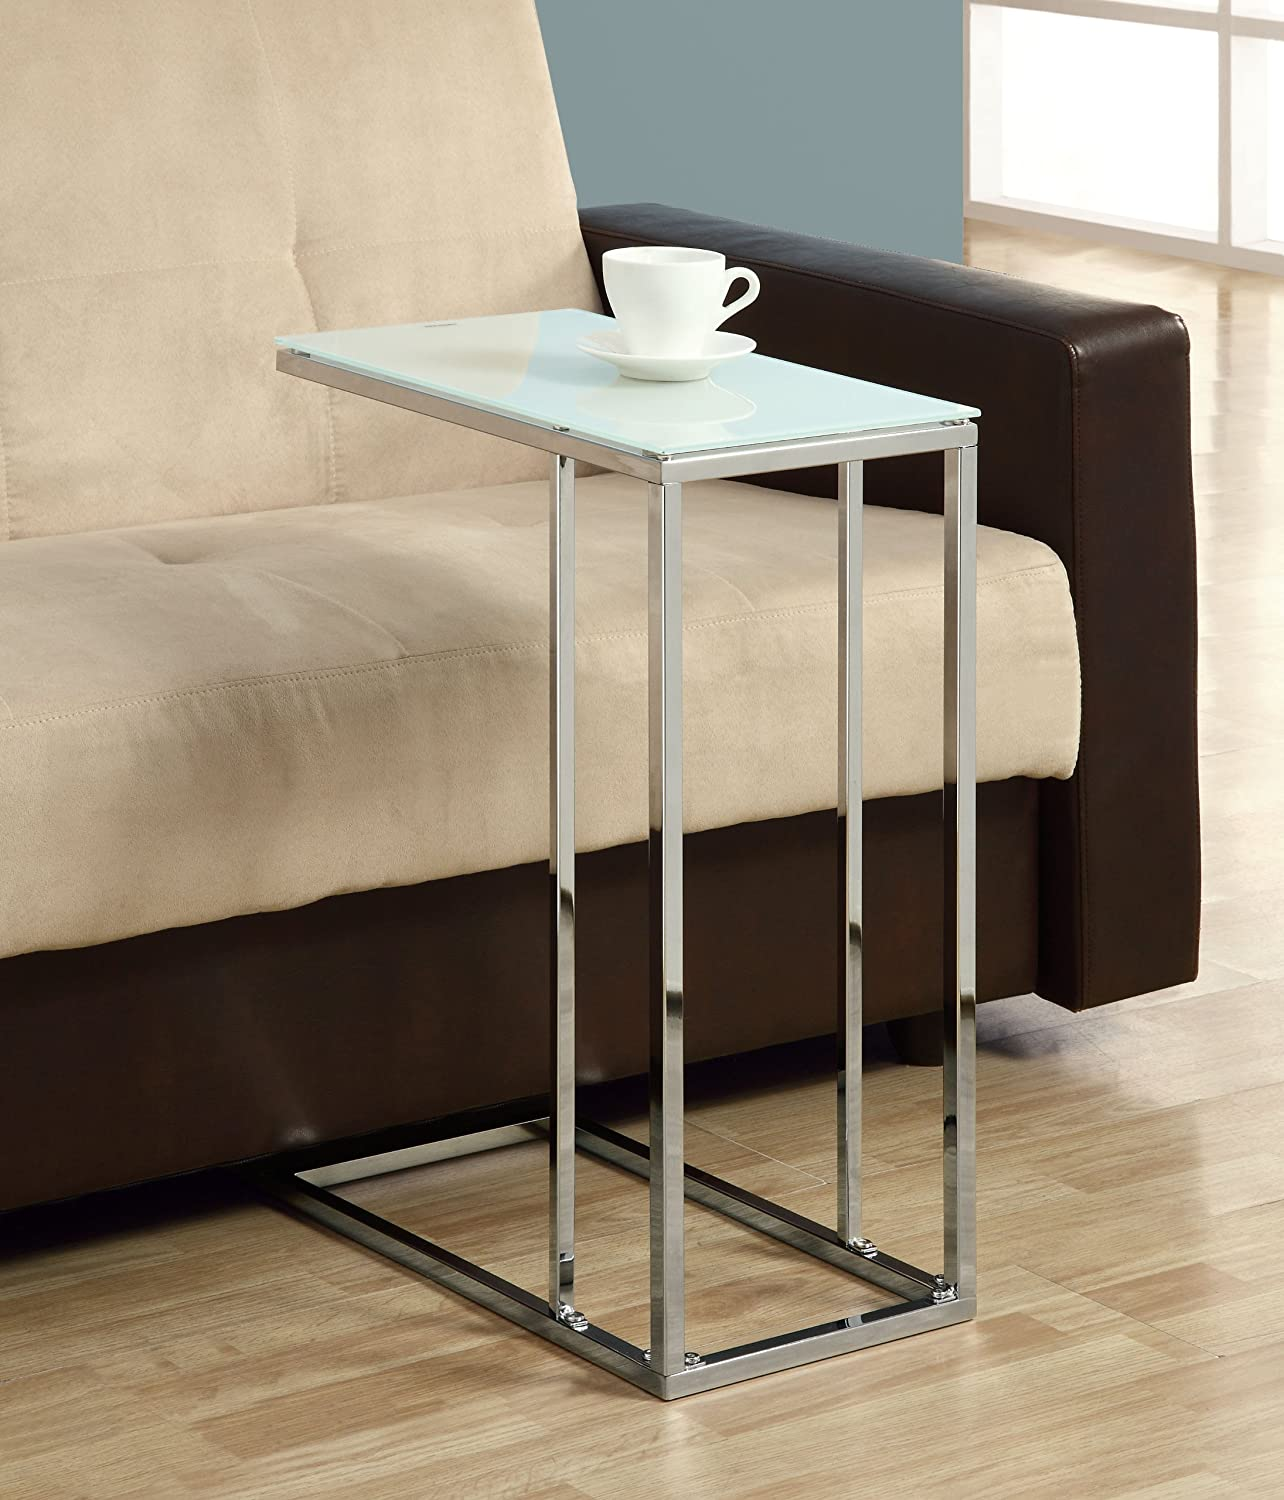 new living room coffee end table slide under couch side metal glass top chrome ebay. Black Bedroom Furniture Sets. Home Design Ideas